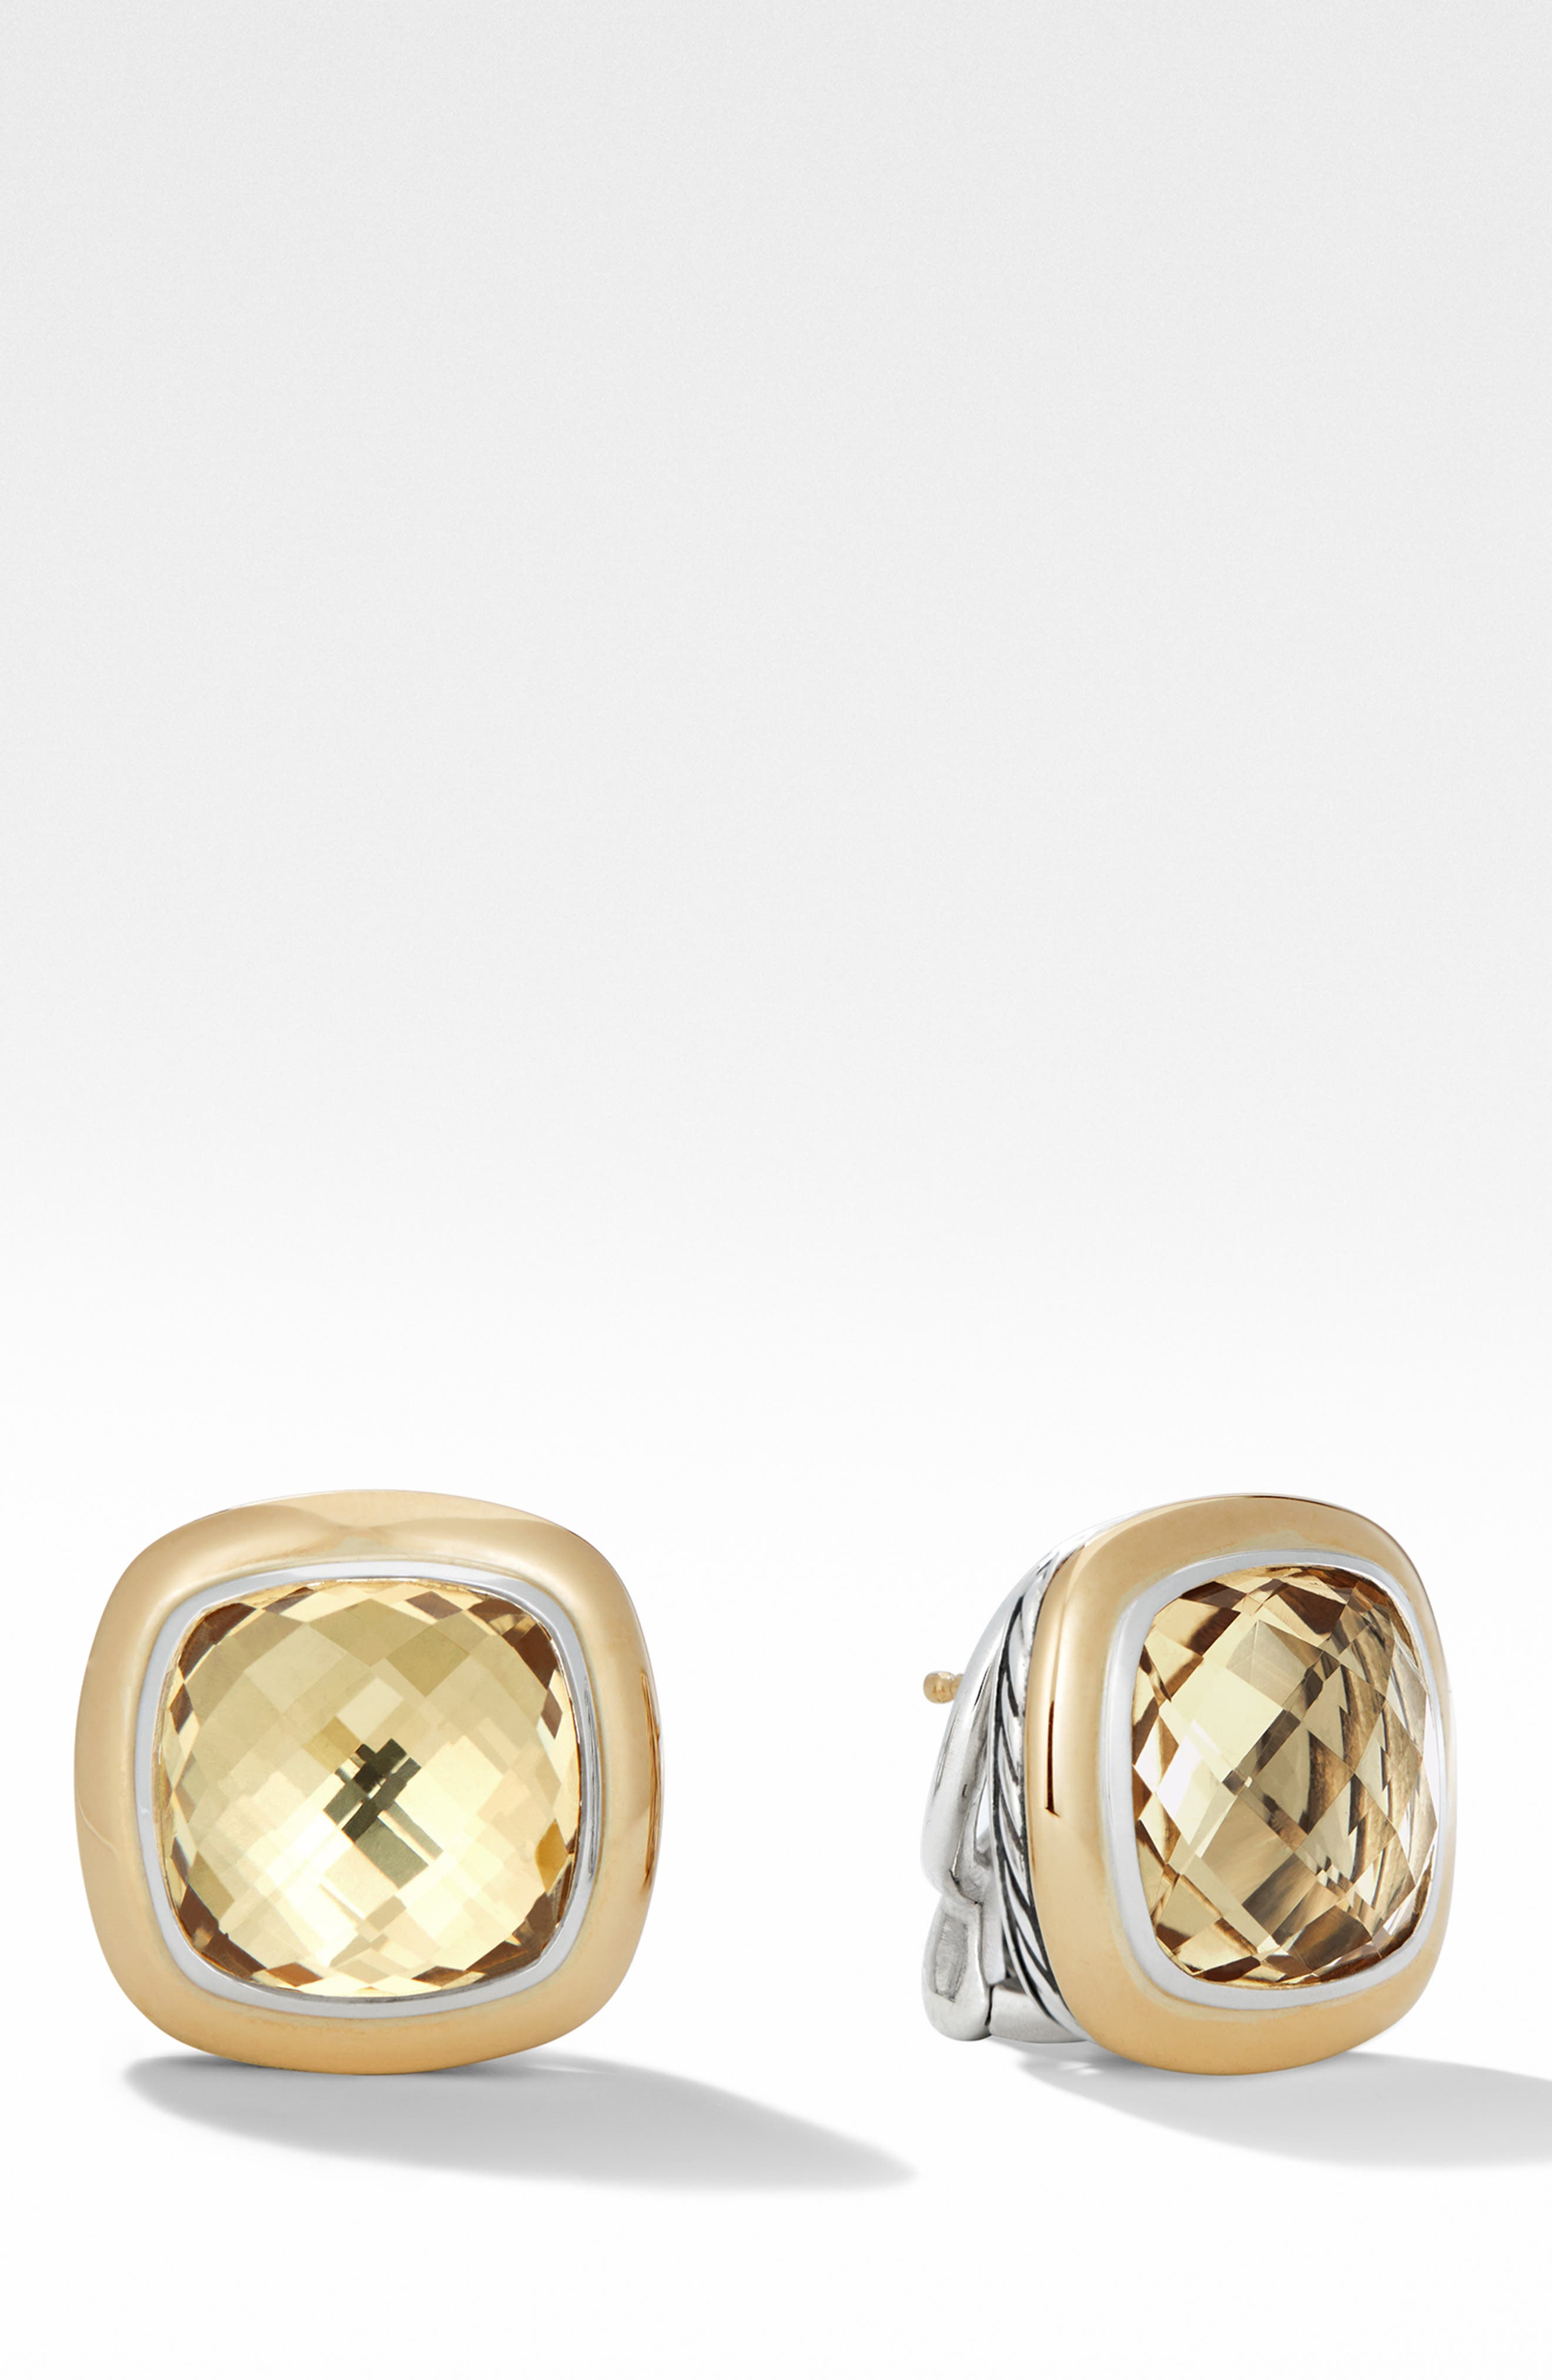 Albion<sup>®</sup> Stud Earrings with 18K Gold,                         Main,                         color, CHAMPAGNE CITRINE